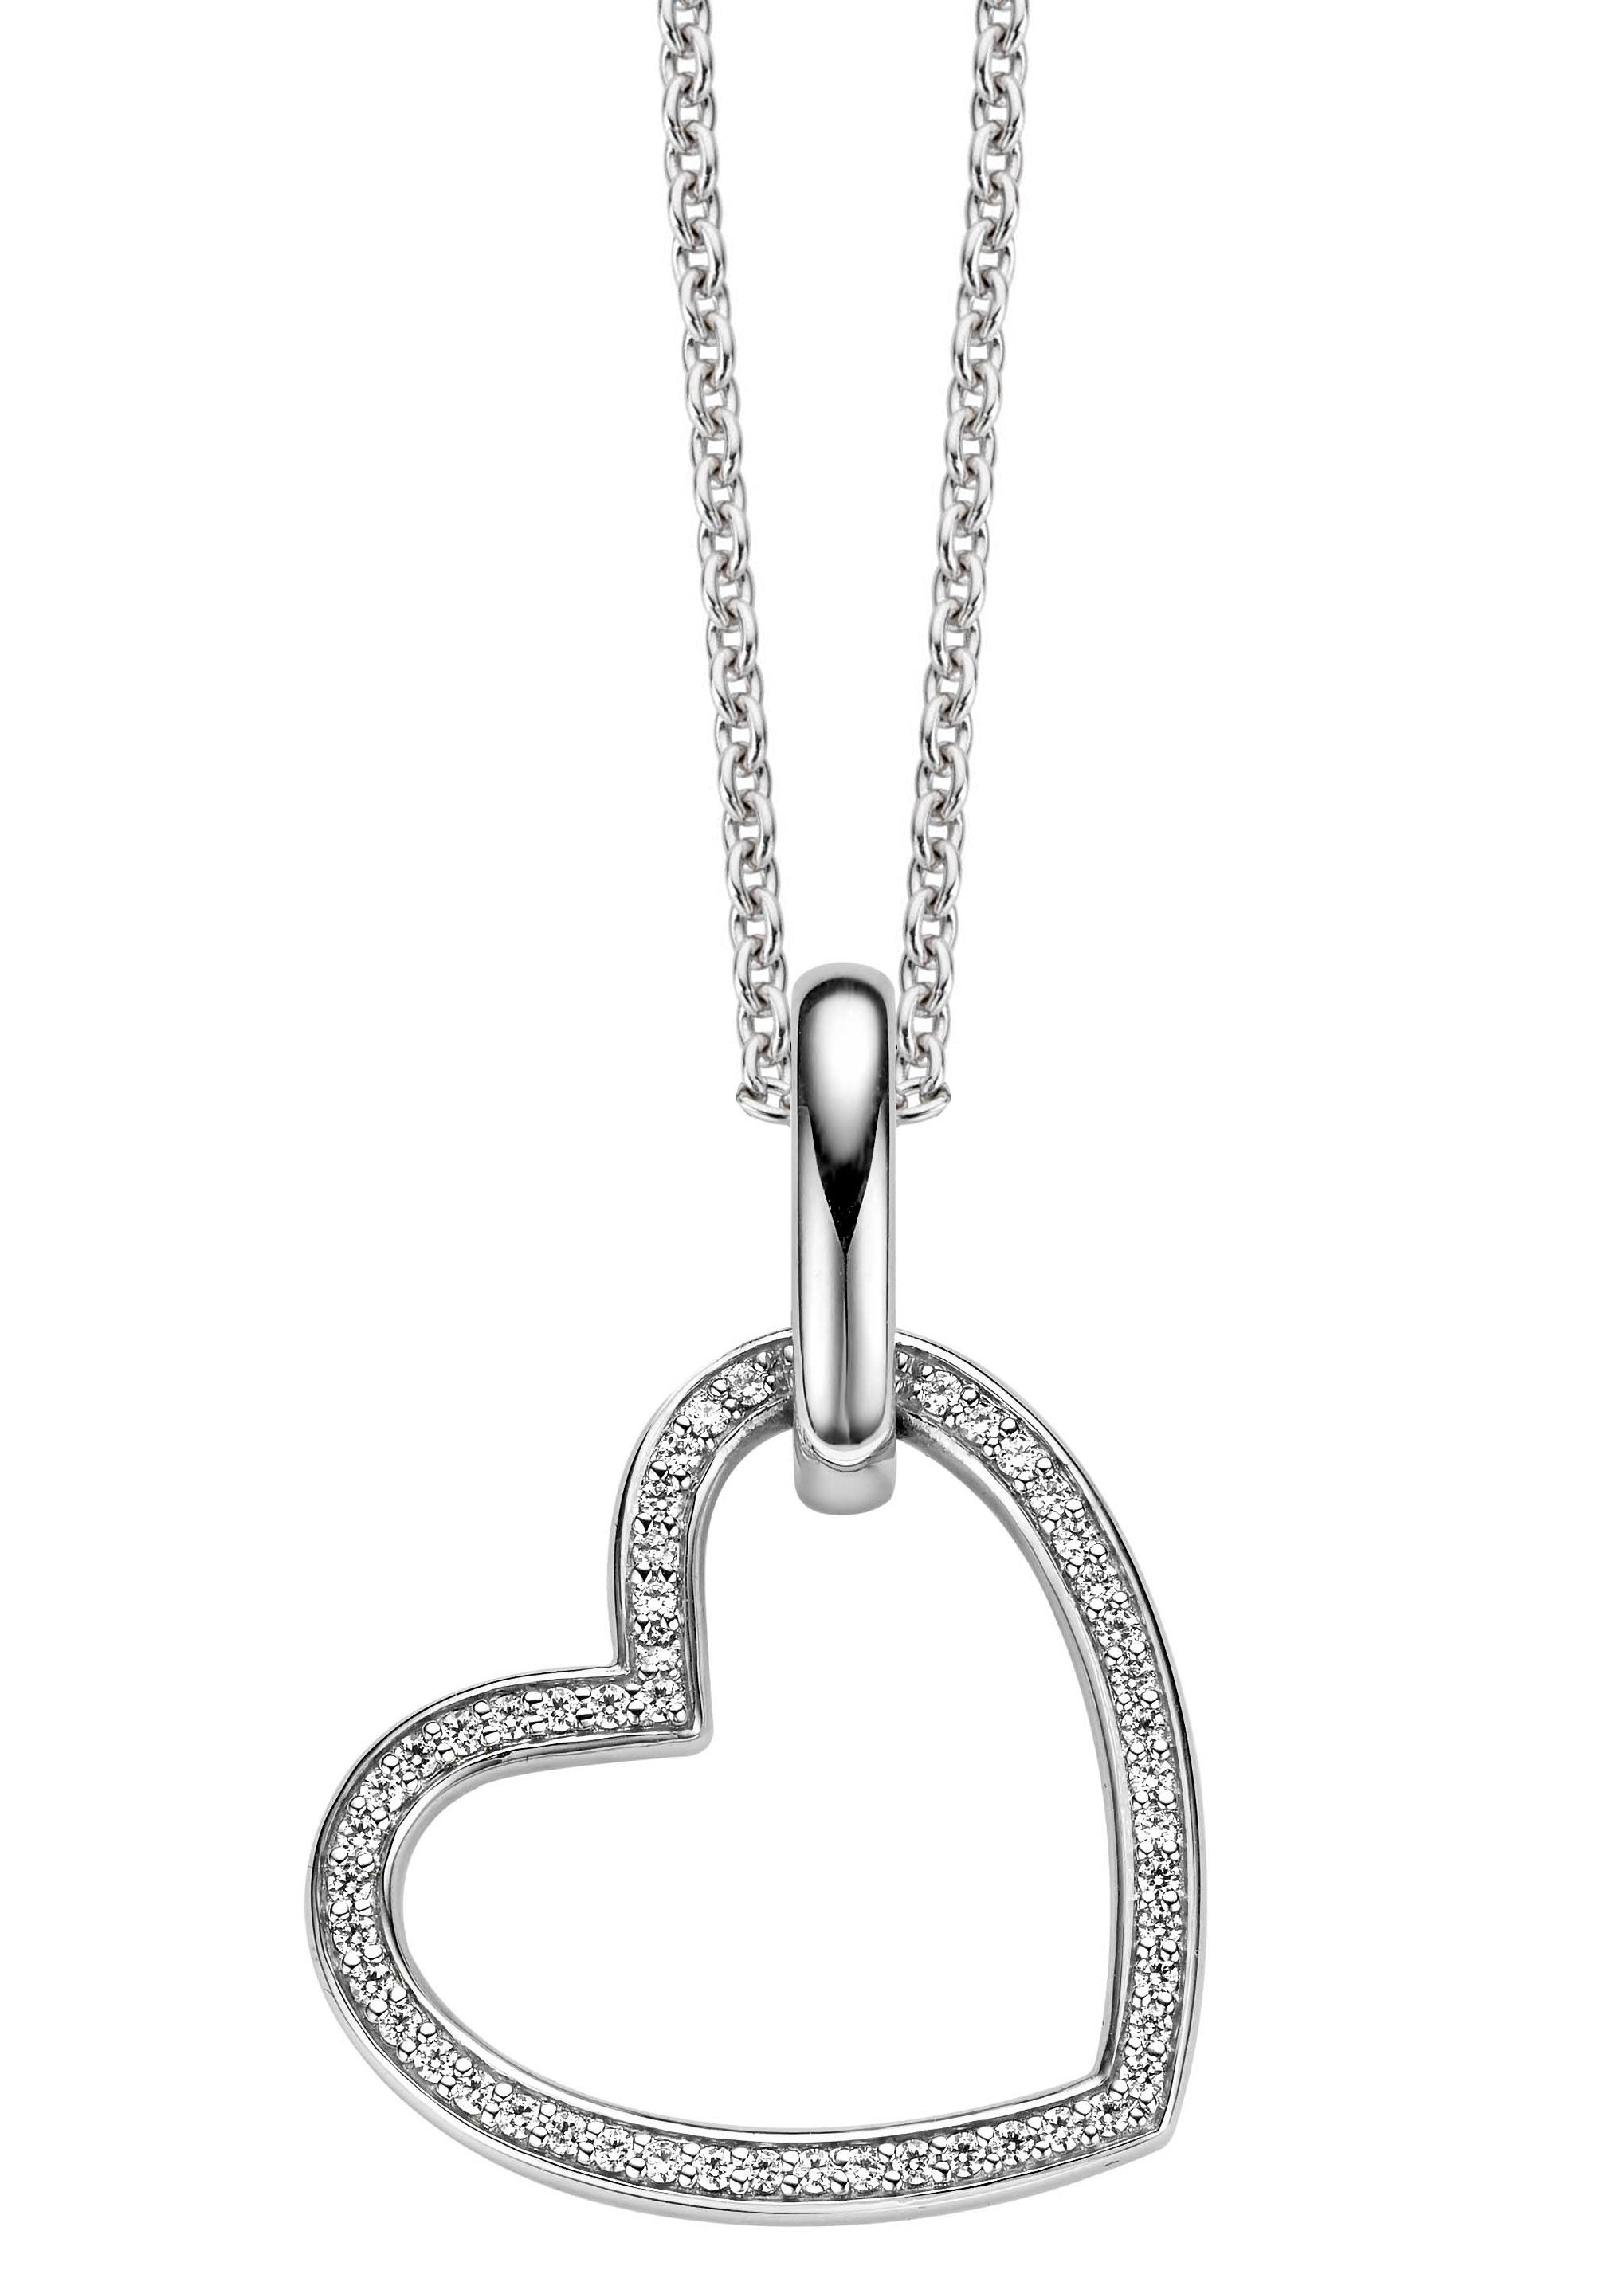 Ti sento heart pendant with classic silver chain a stunning